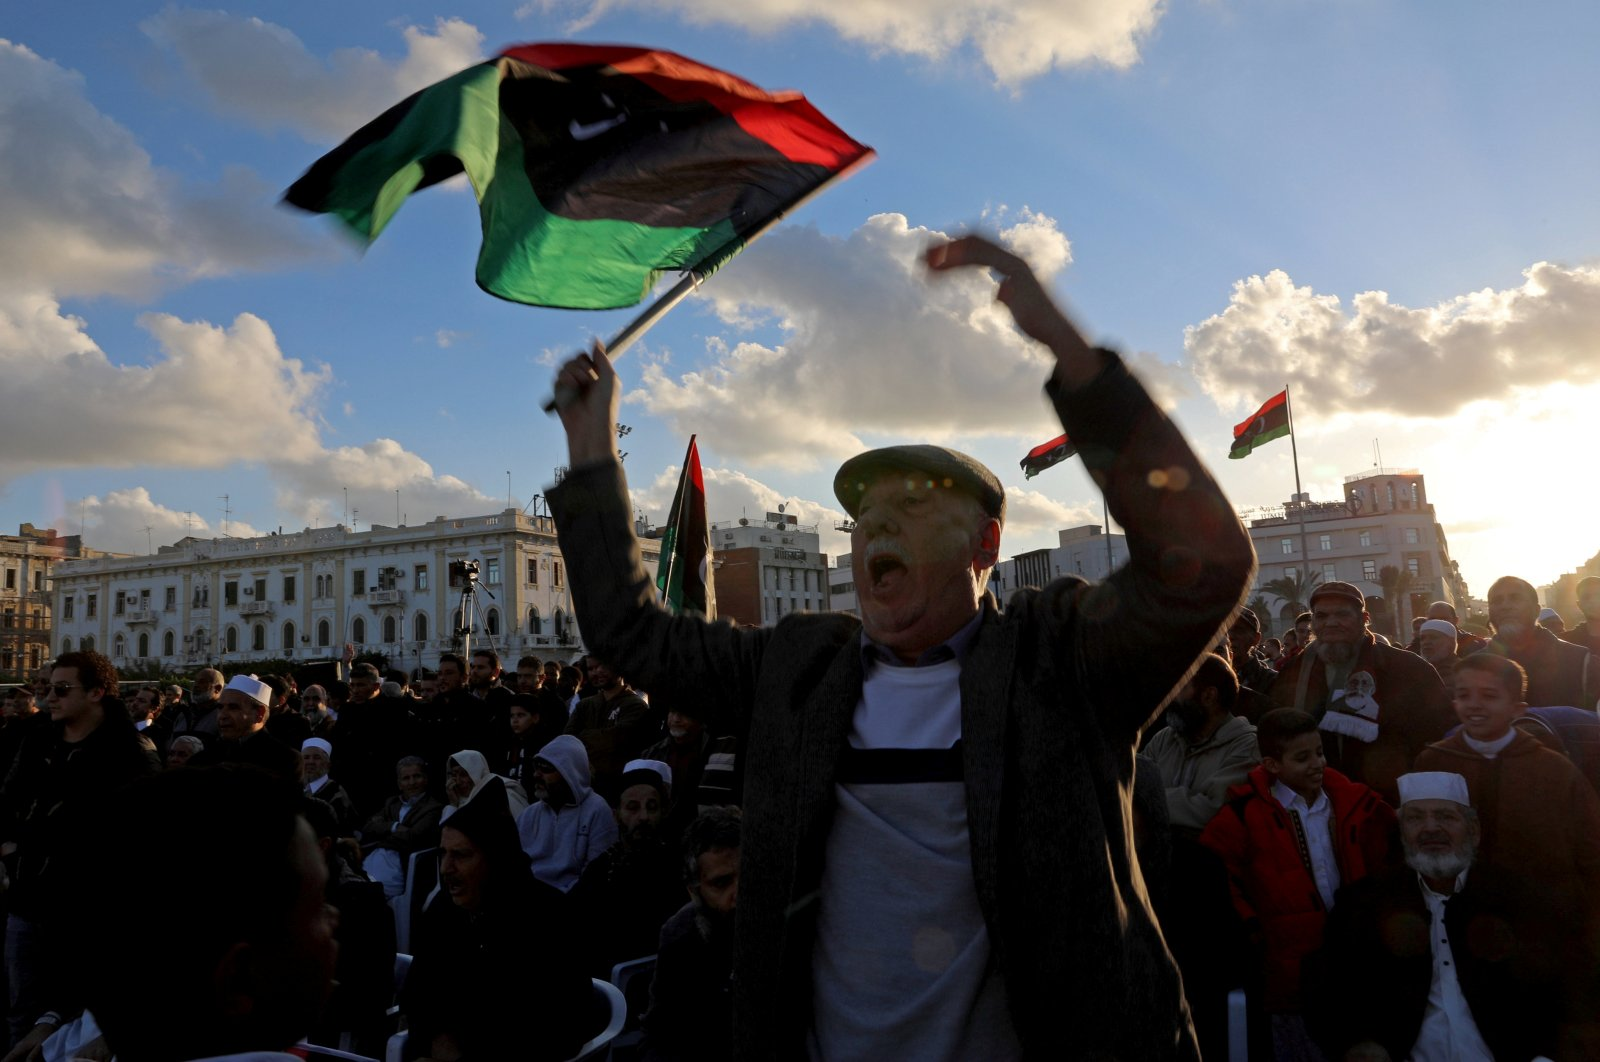 Libyan protesters shout slogans during a demonstration to demand an end to renegade Gen. Khalifa Haftar's offensive against Tripoli, in Martyrs' Square in central Tripoli, Libya December 27, 2019.  (Reuters Photo)